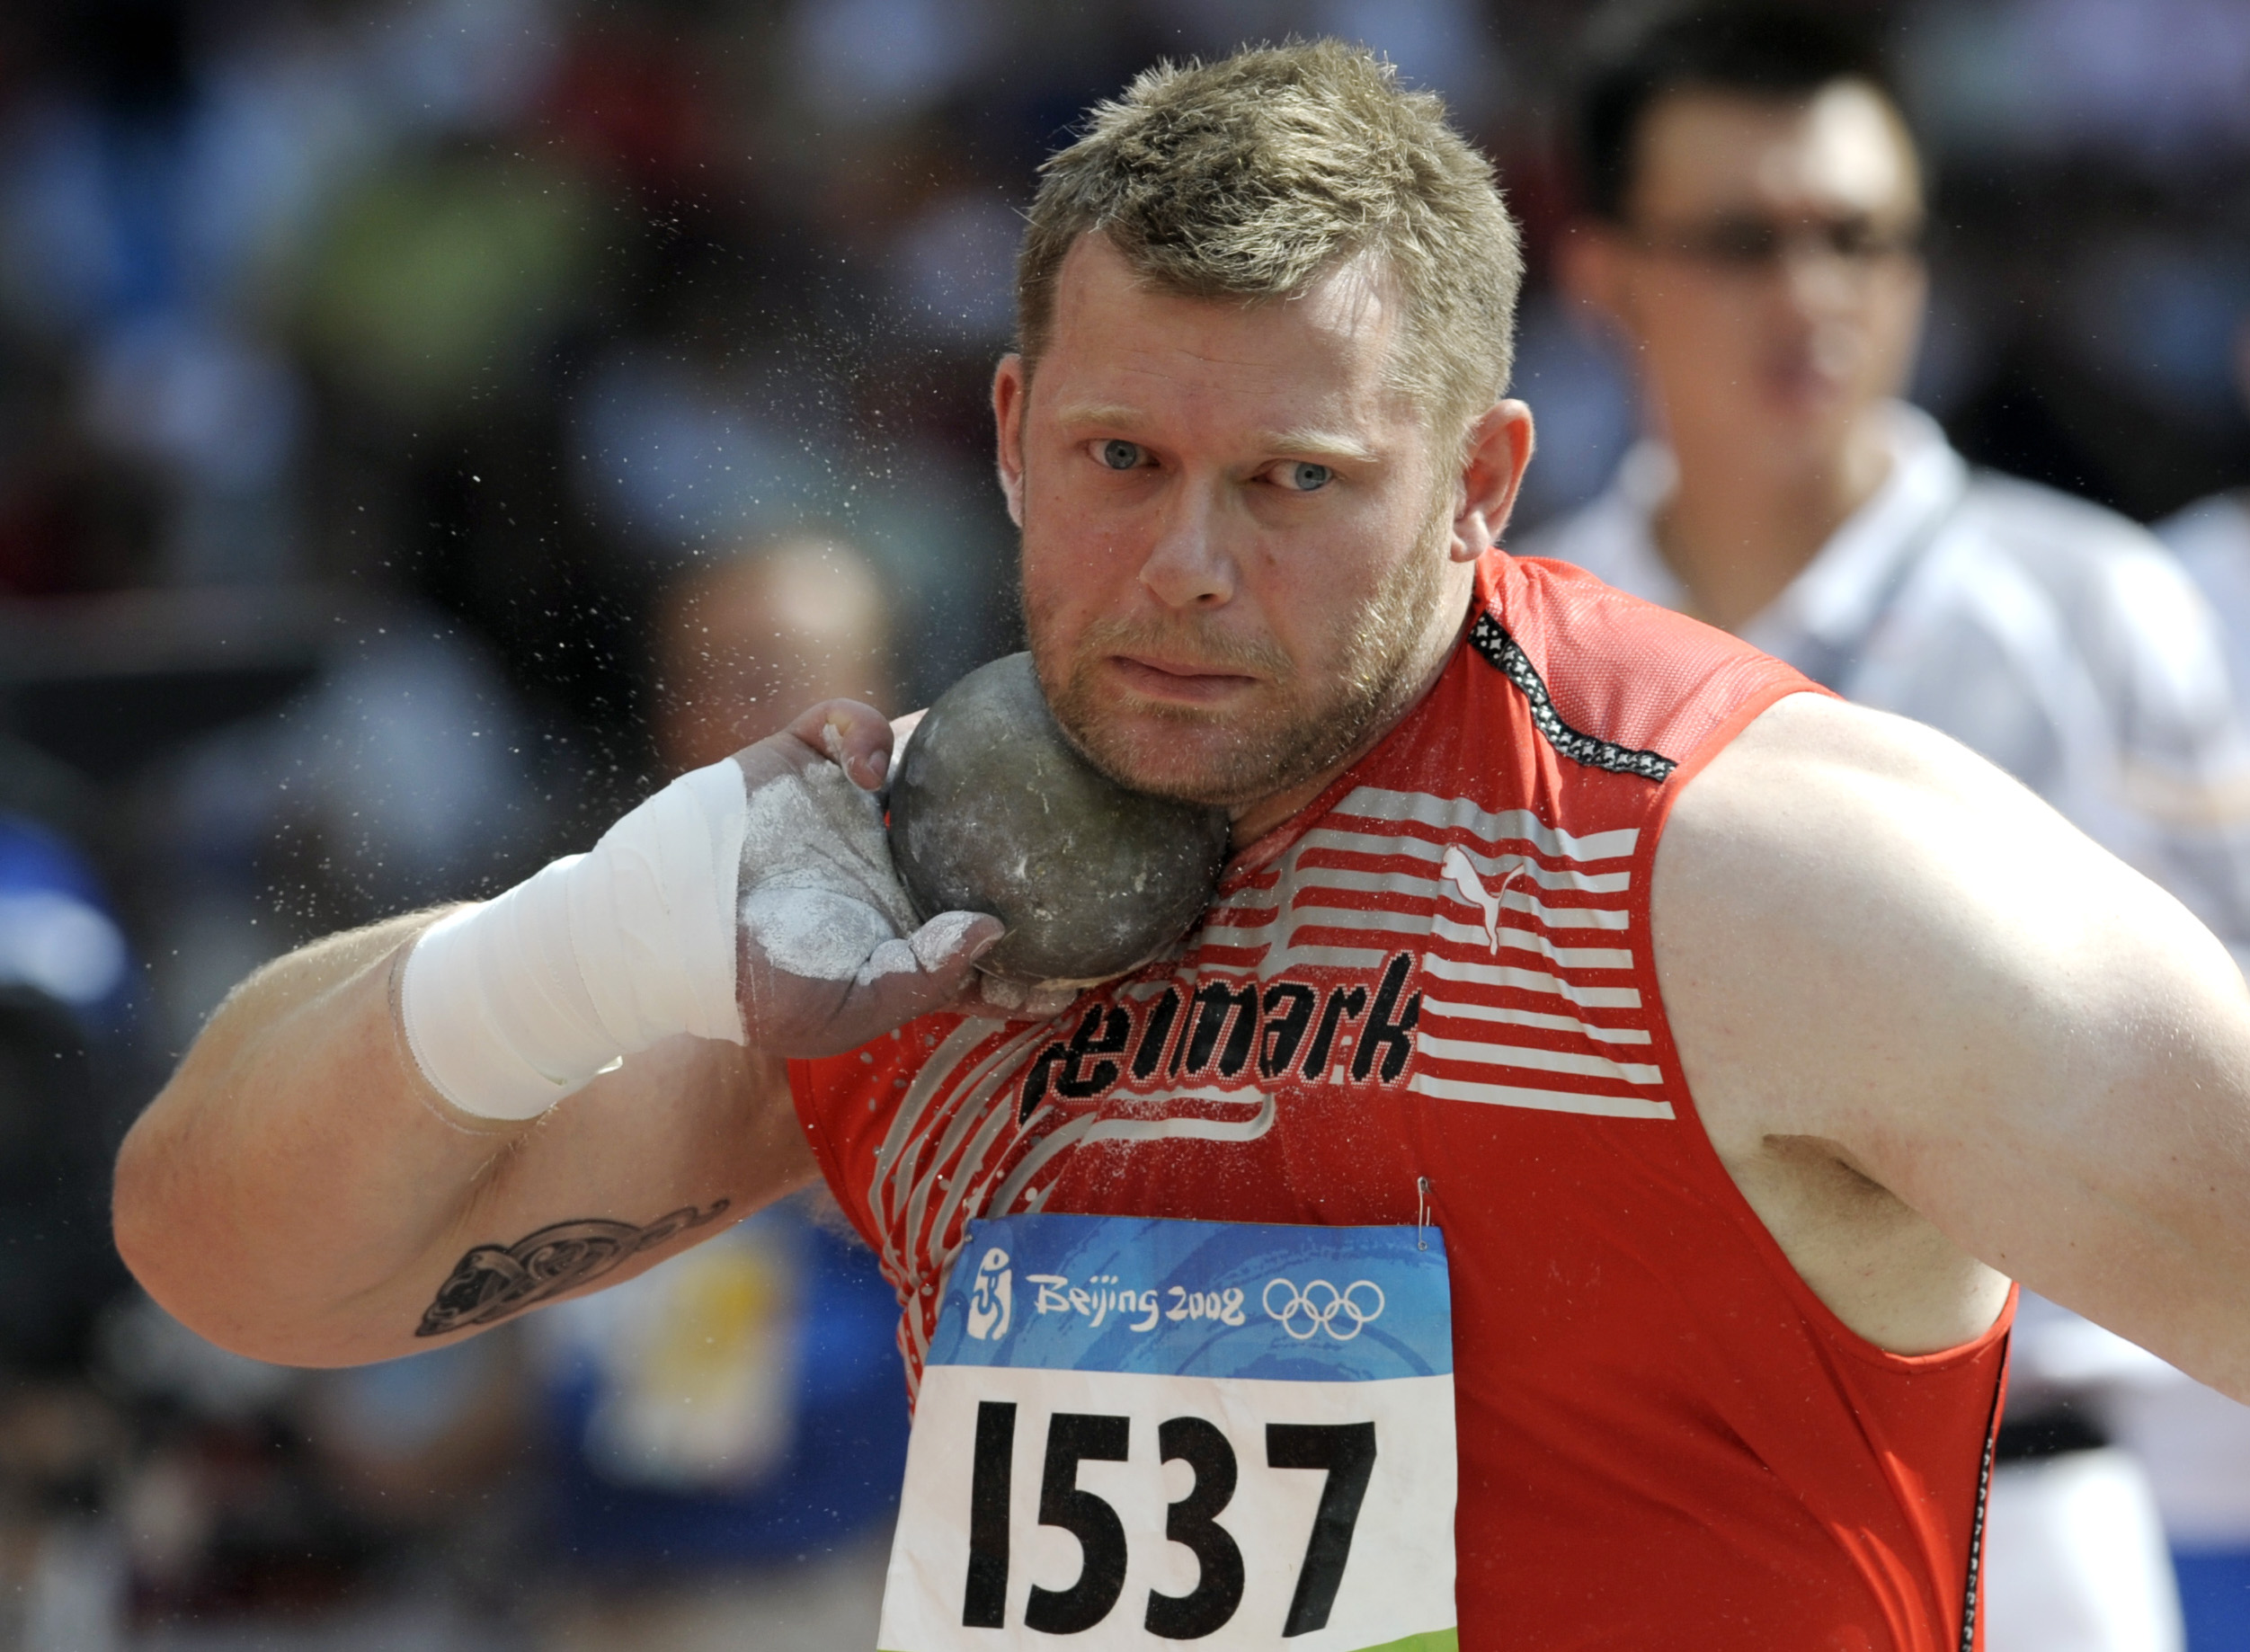 Denmark's Joachim Broechner Olsen participates in the men's shot put during the athletics competitions in the National Stadium  at the Beijing 2008 Olympics in Beijing on Aug. 15, 2008.